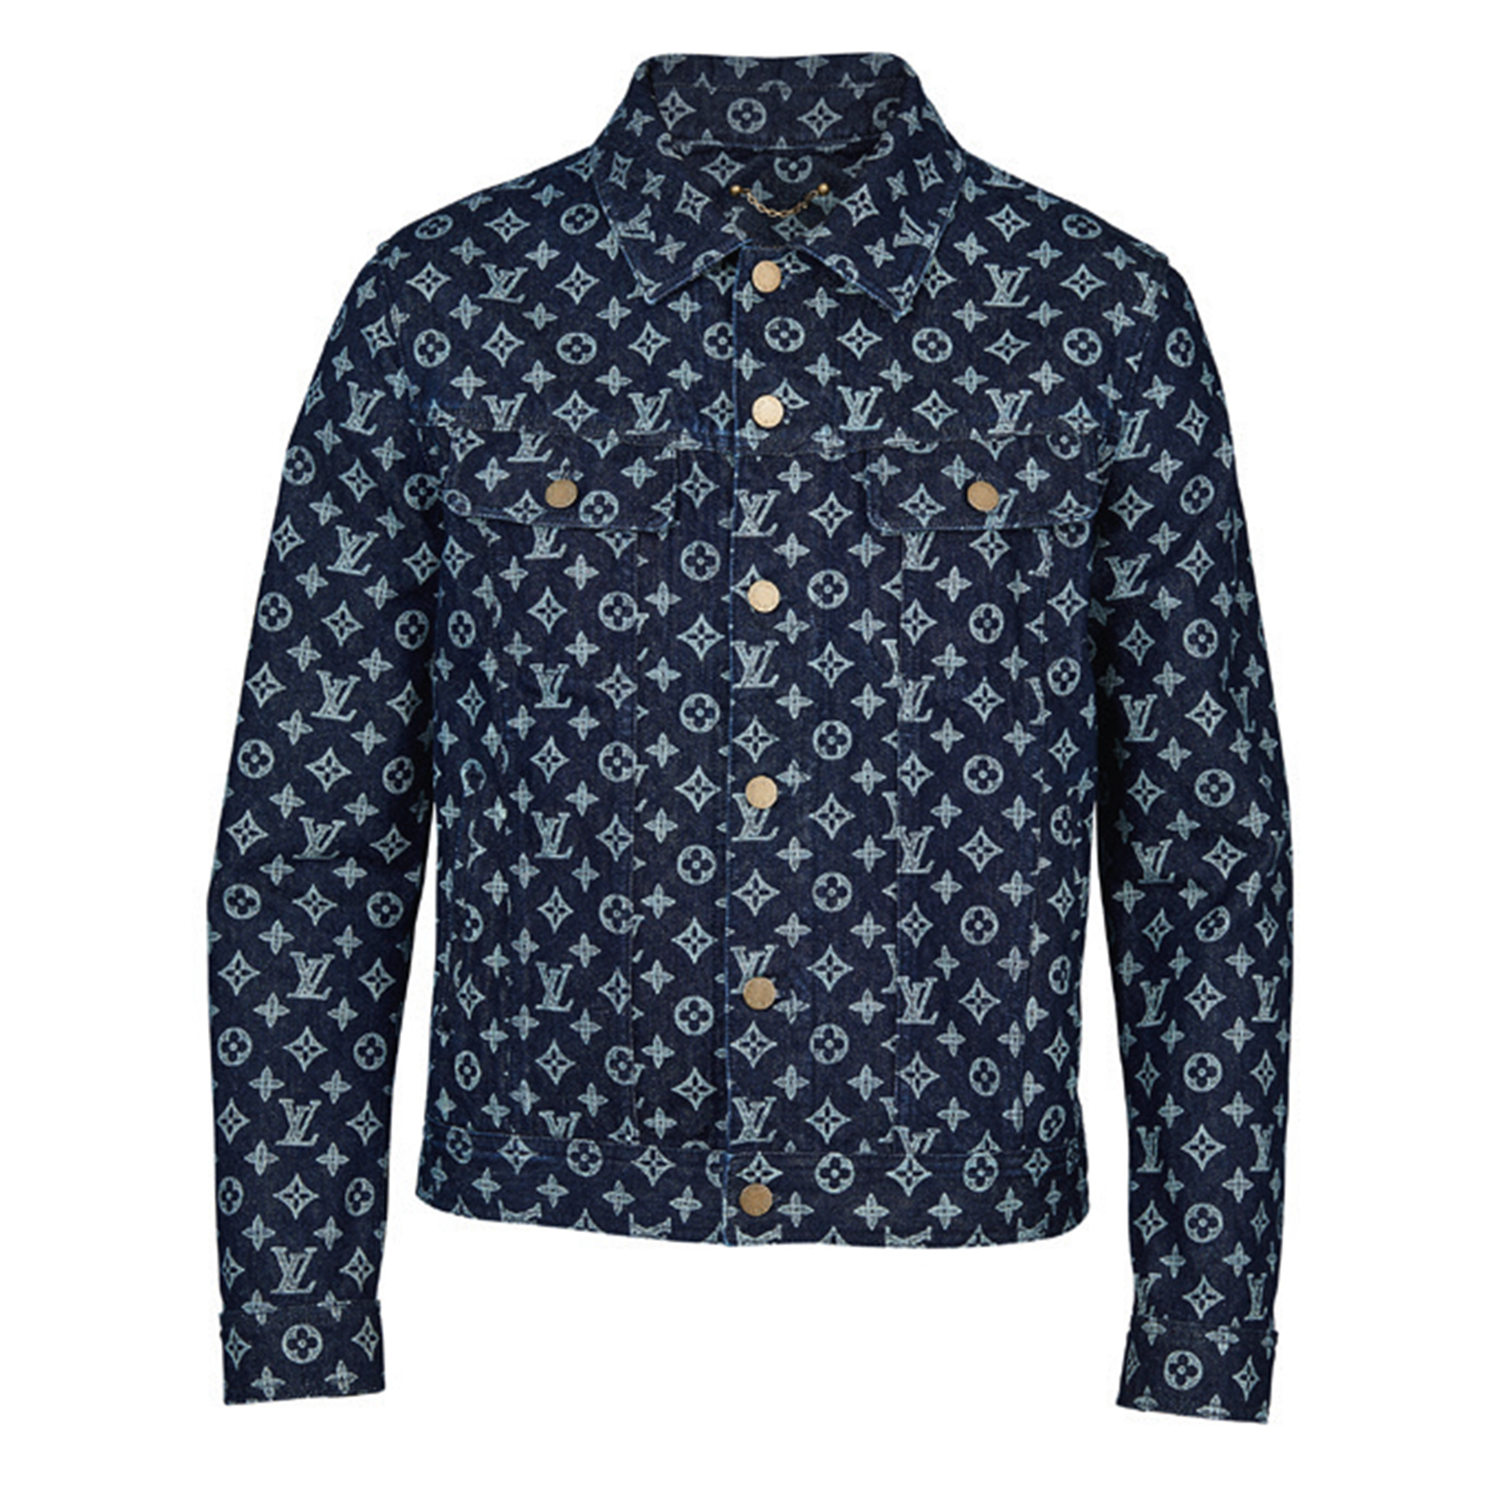 MONOGRAM DENIM JACKET - €1100 $15801A46V6MONOGRAM INK